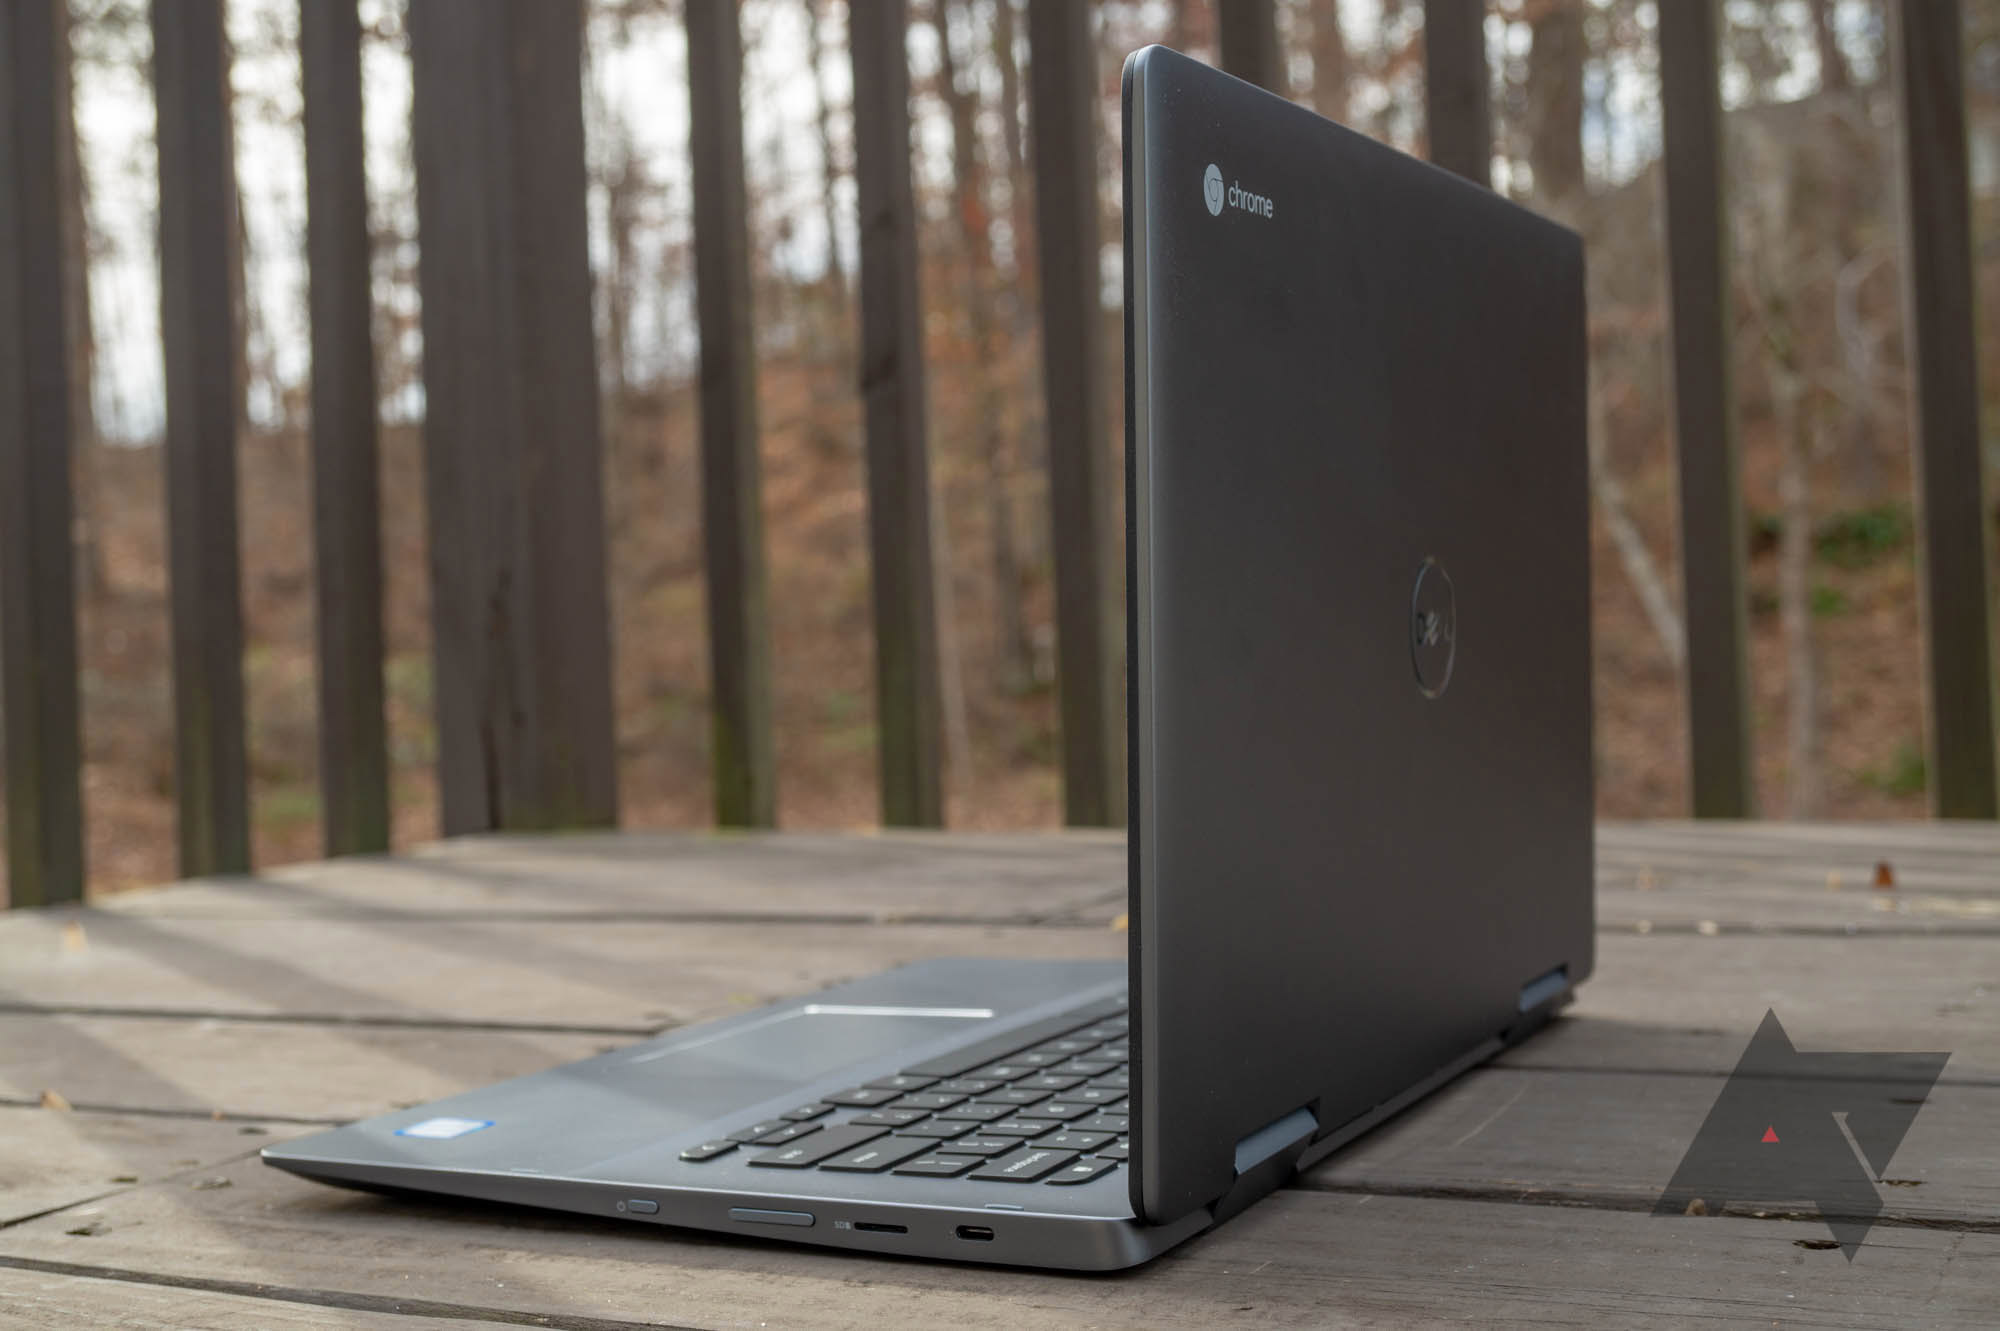 Dell's Inspiron Chromebook 14 has dropped to $450 ($150 off) at Best Buy